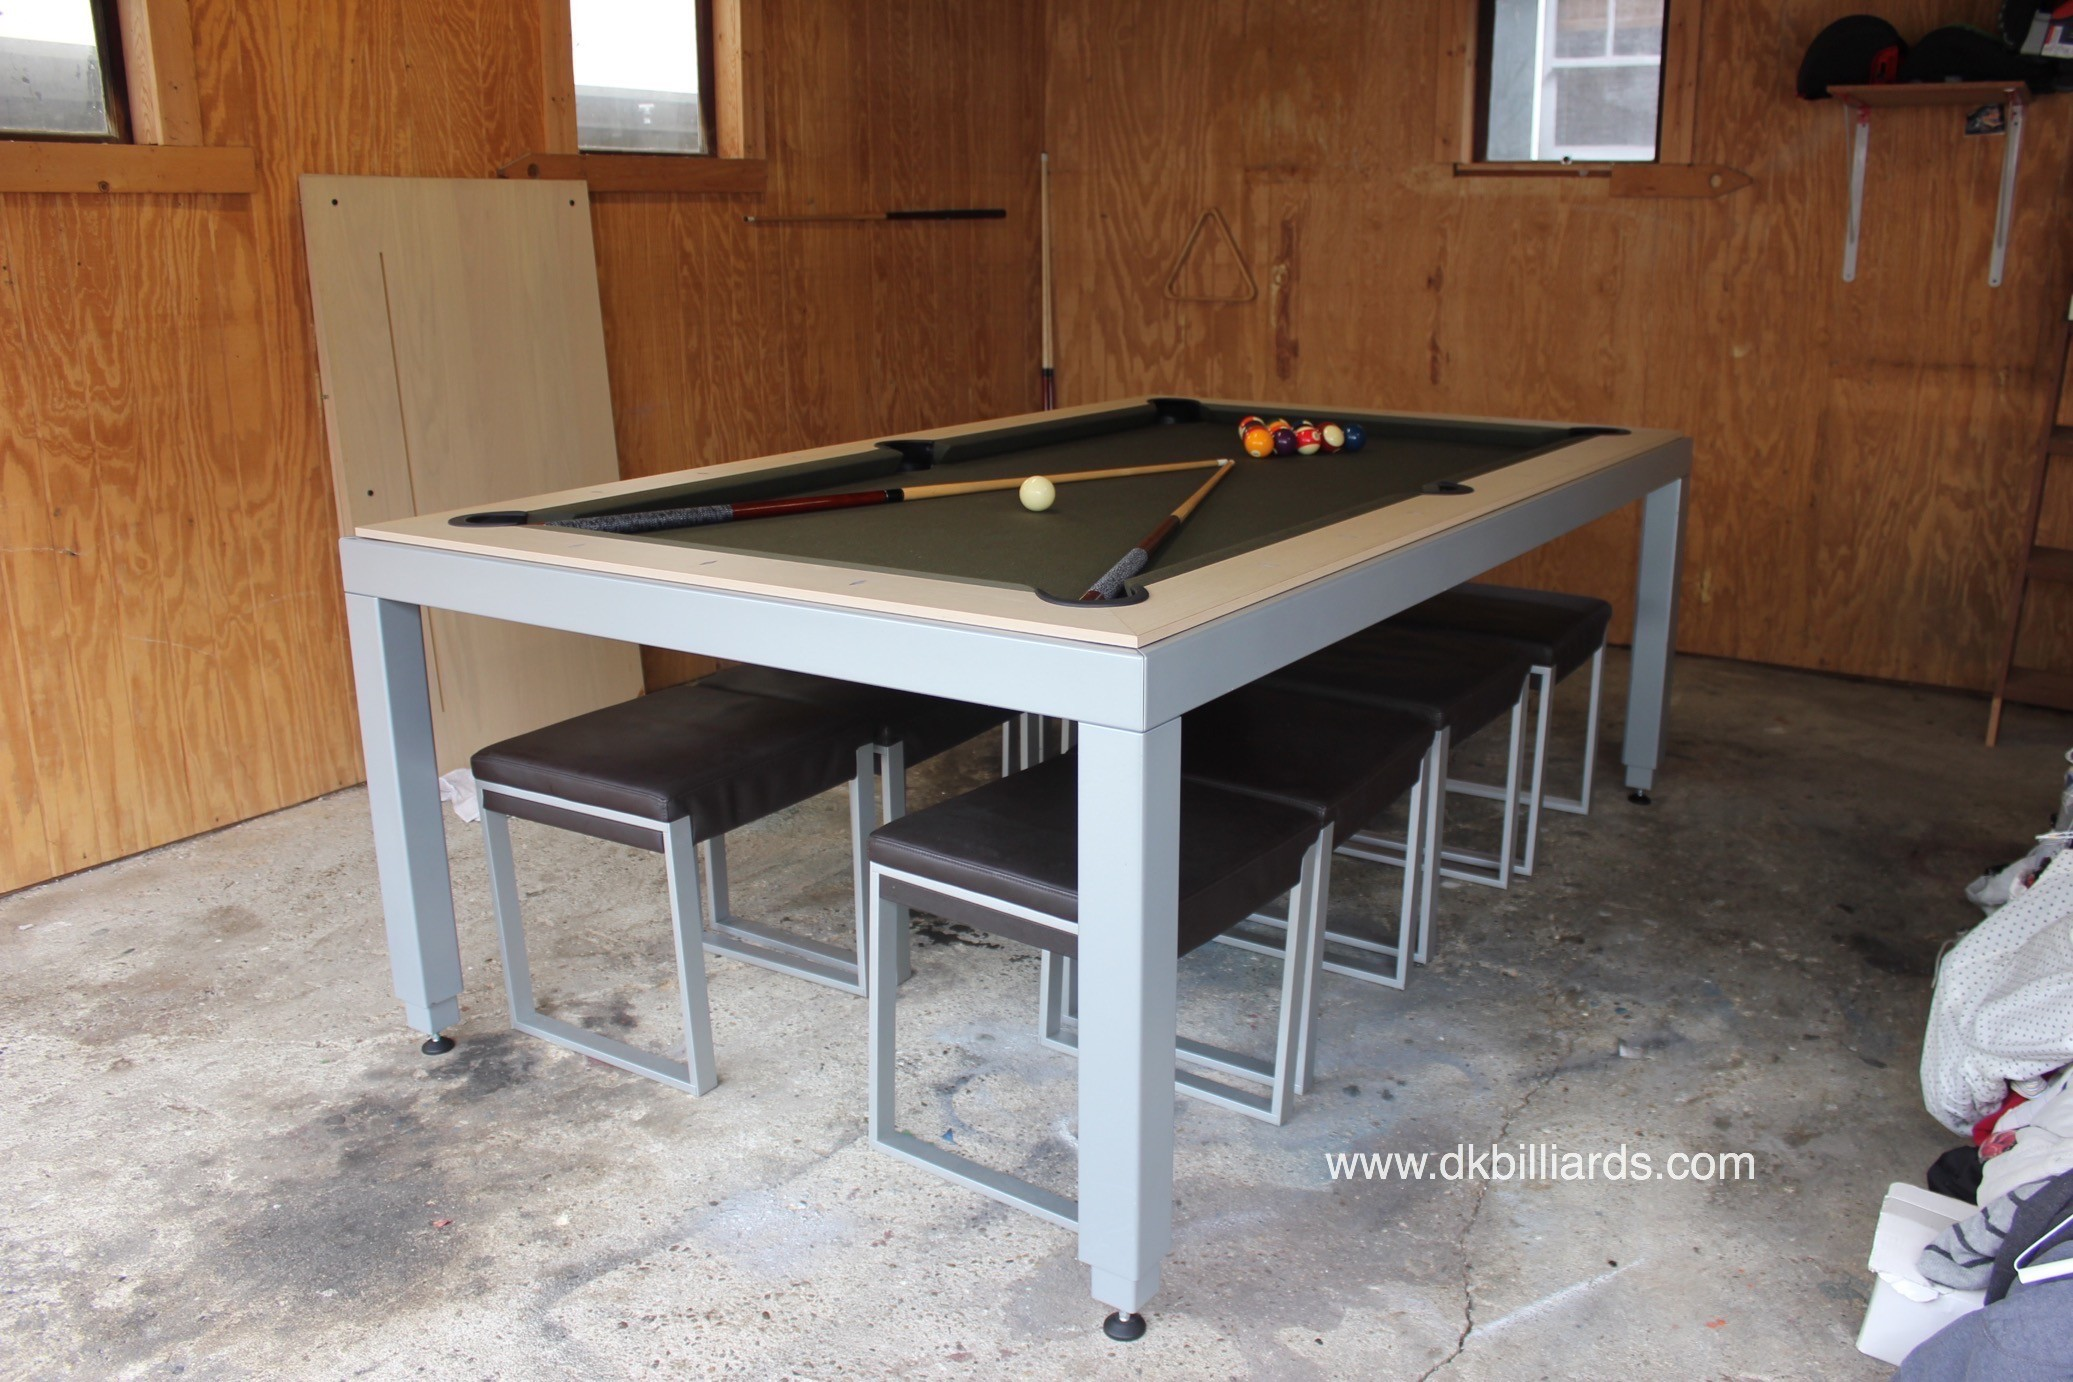 Aramith Fusion In A Garage Pool Table Service Billiard Supply - Aramith fusion pool table